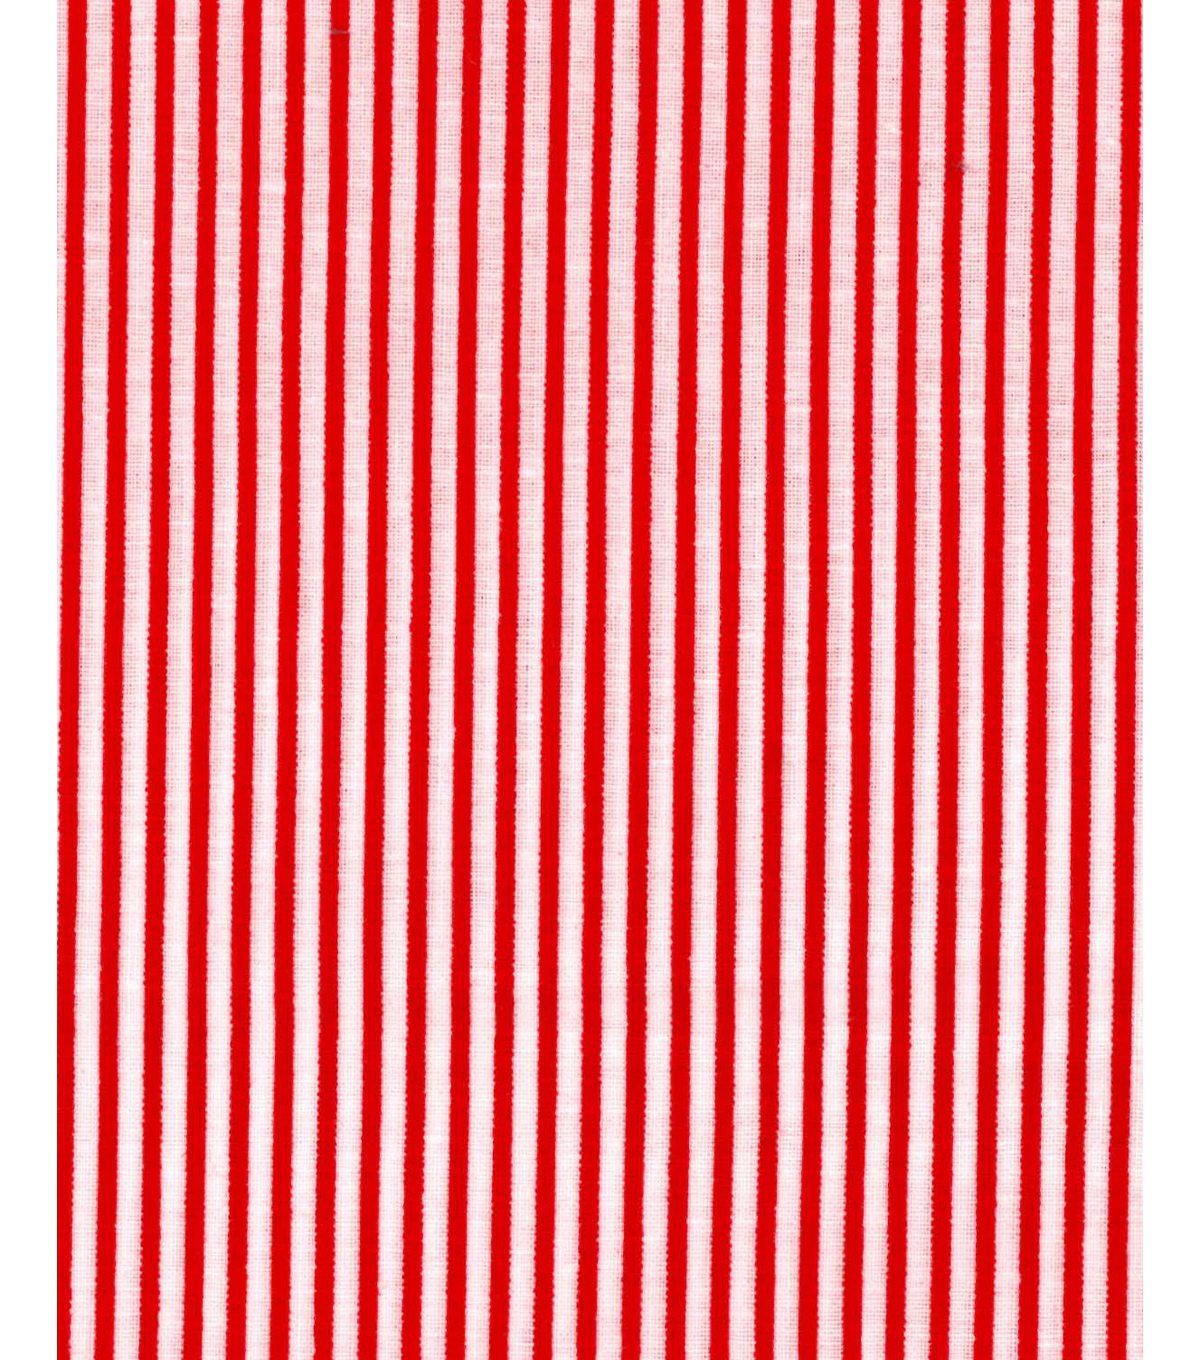 """Holiday Showcase Christmas Cotton Fabric 43"""" Red Stripe              Holiday Showcase Christmas Cotton Fabric 43"""" Red Stripe by Quilter's Showcase"""